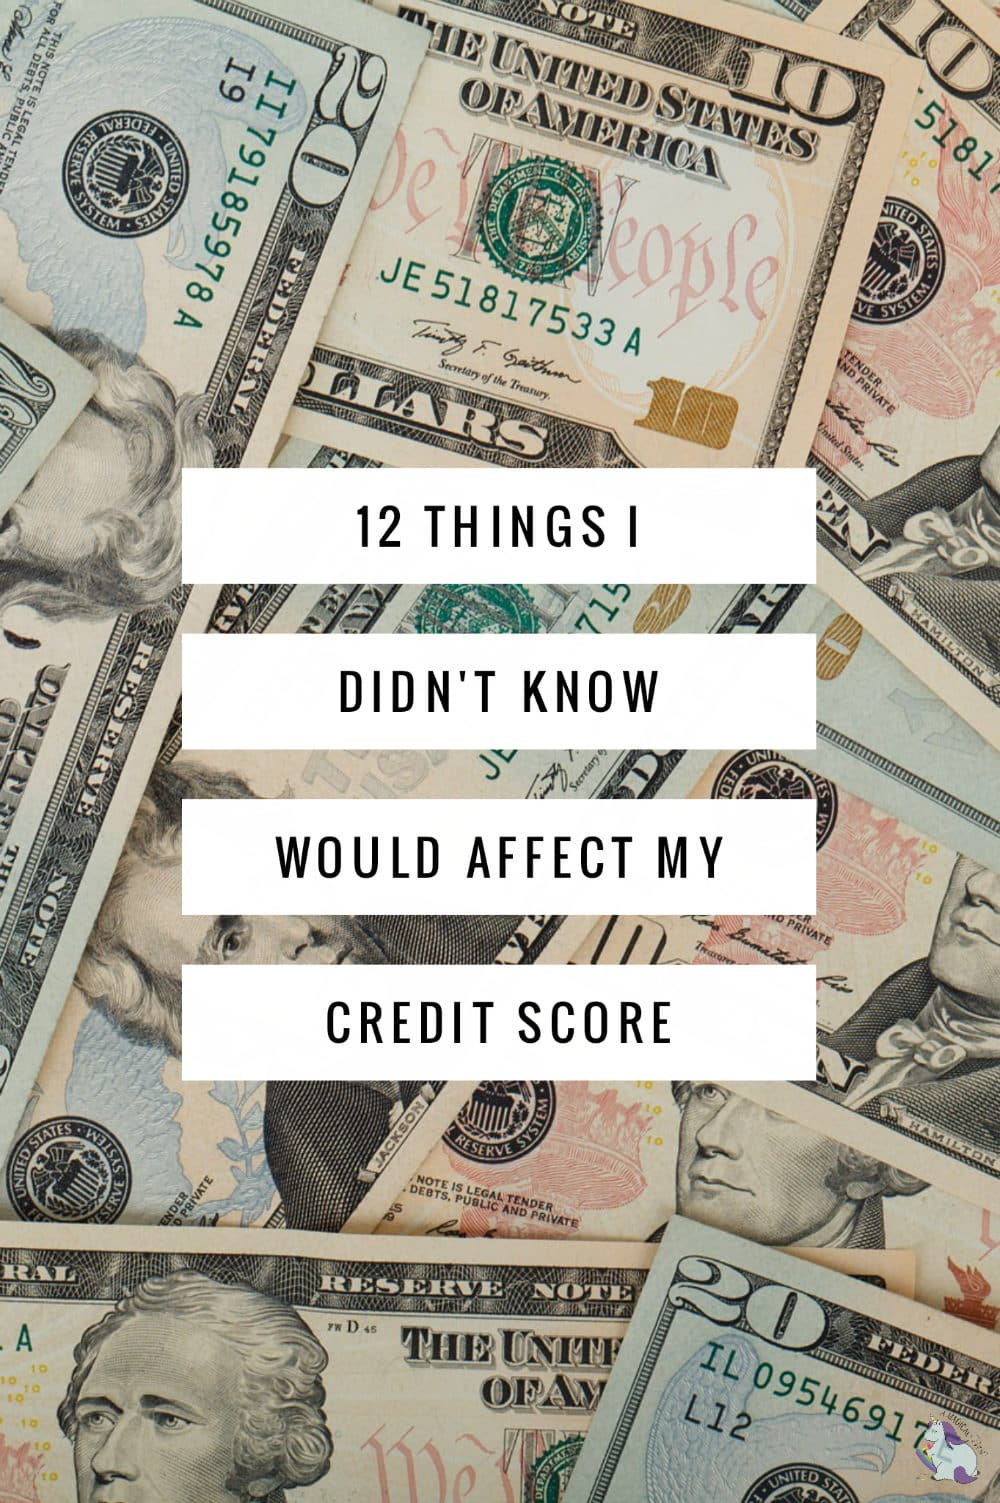 12 Things I didn't know would affect my credit score